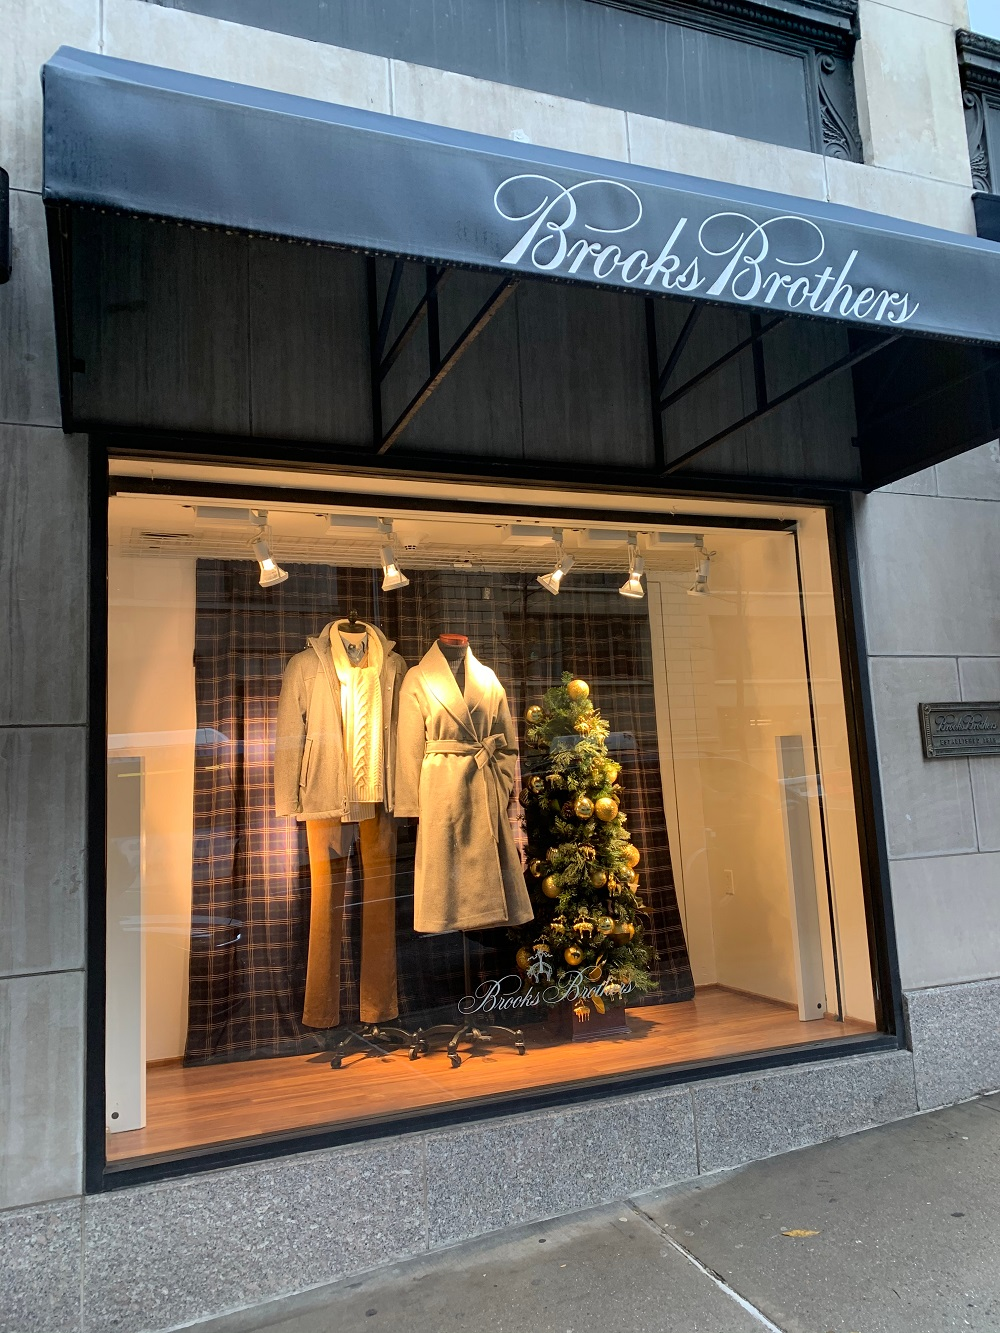 Brooks Brothers confirmed it's considering closing three U.S. apparel factories that make shirts and ties, potentially affecting 695 jobs.